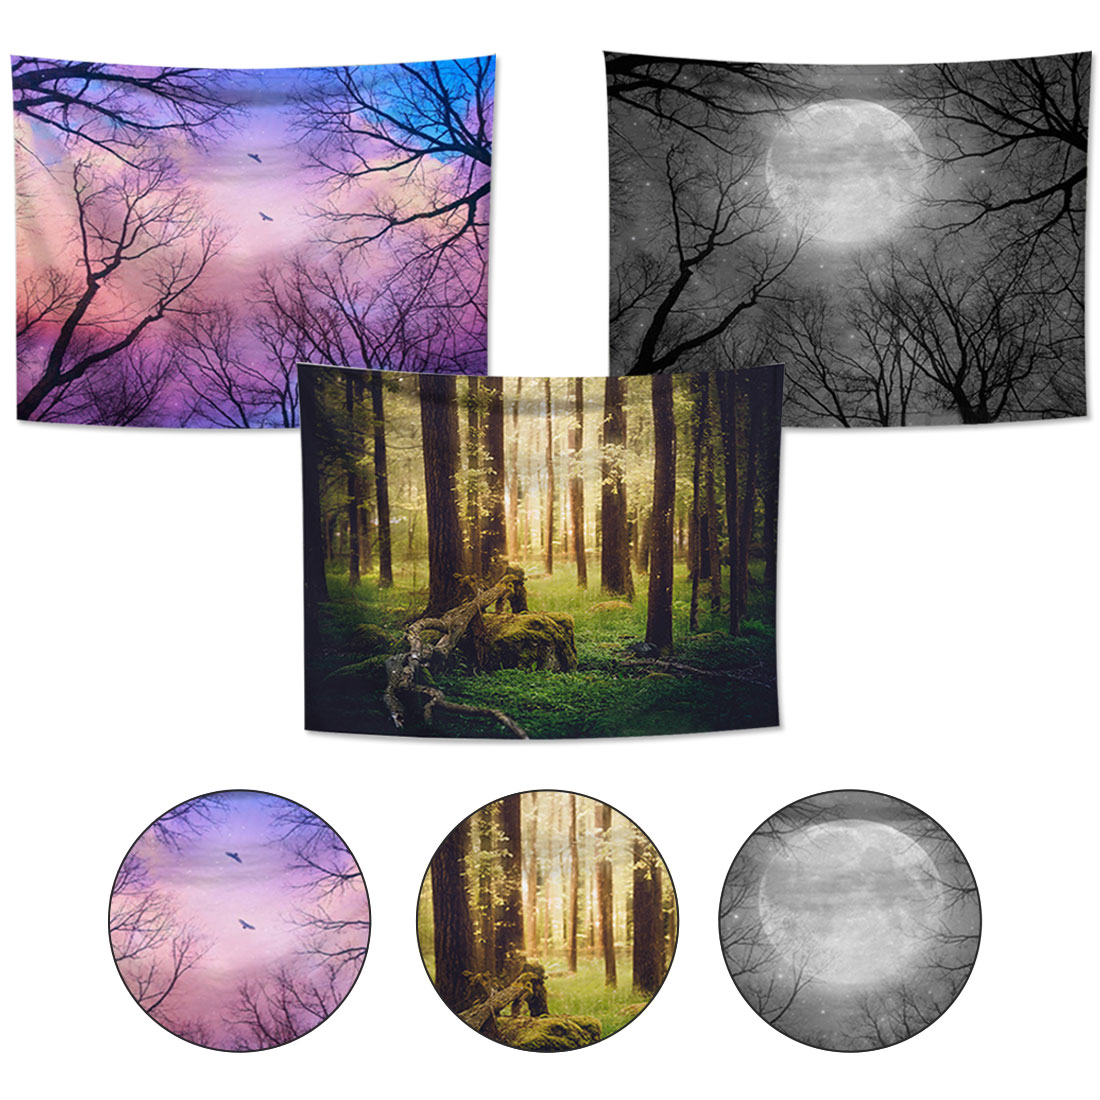 150x130cm/200x150cm Night Scenic Tapestry Wall Hanging Decor Star Plant Printed Carpet Hanging Living Printing Wall Tapestry